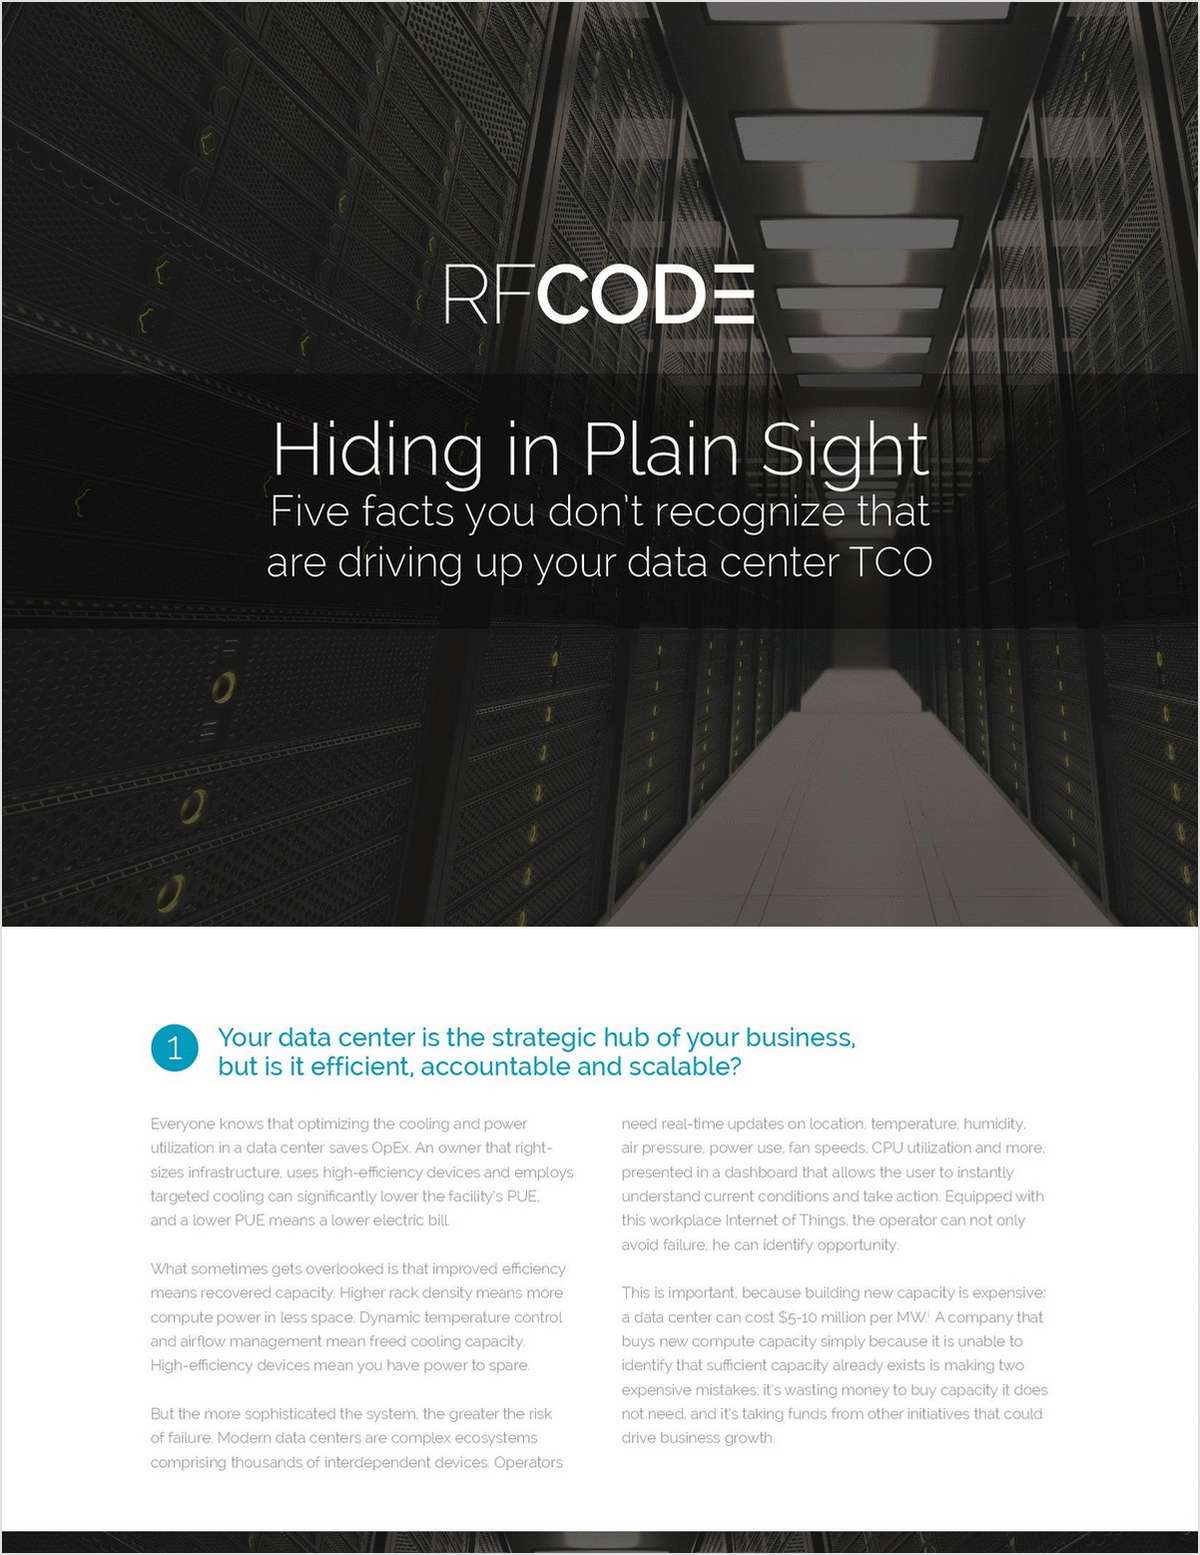 5 Data Center Facts Driving Up Costs That You Need to Recognize